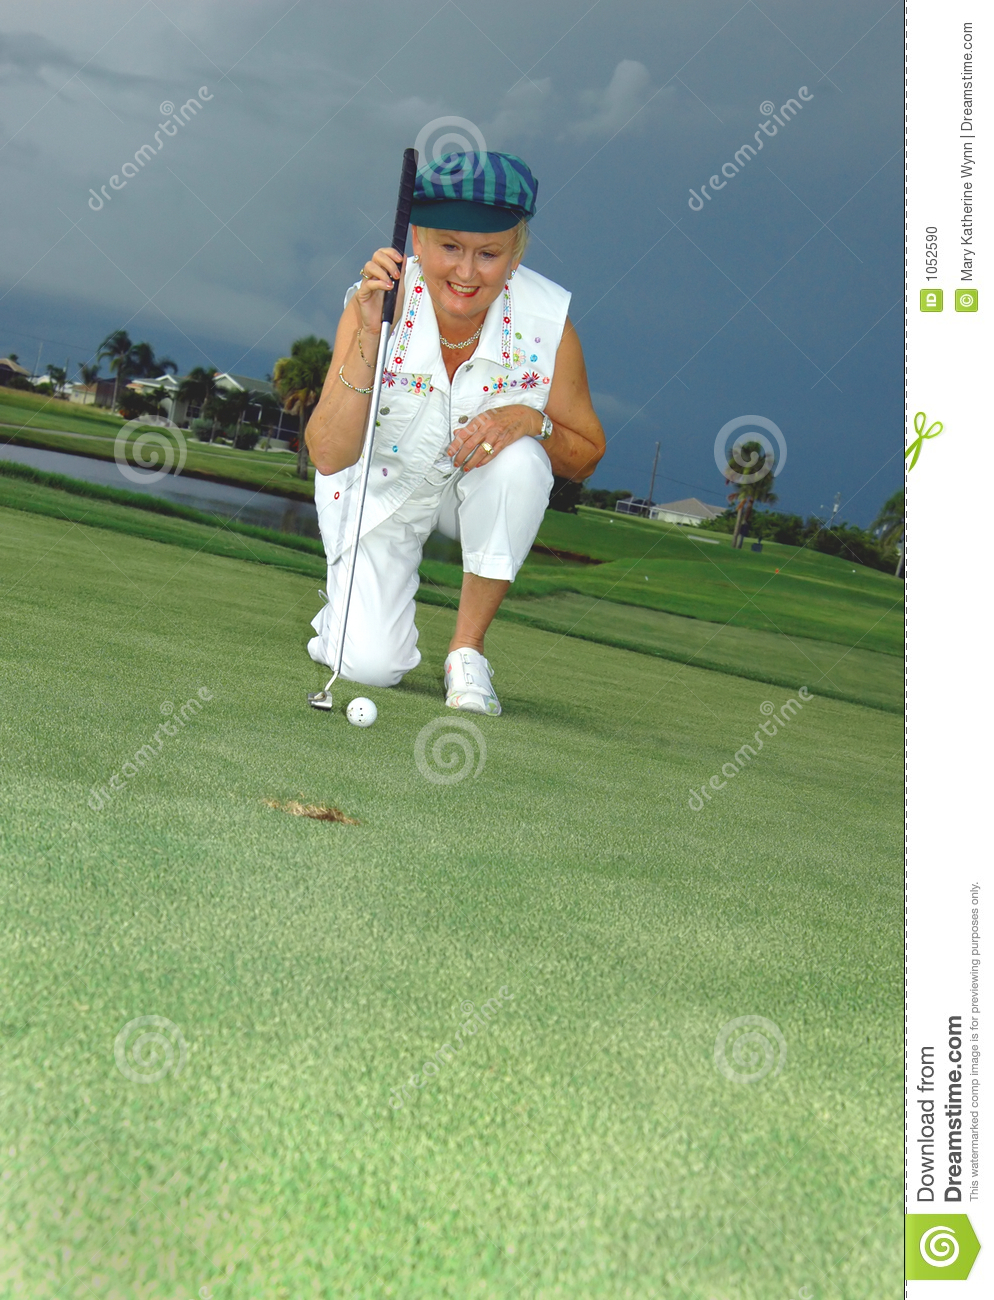 Lining up her putt